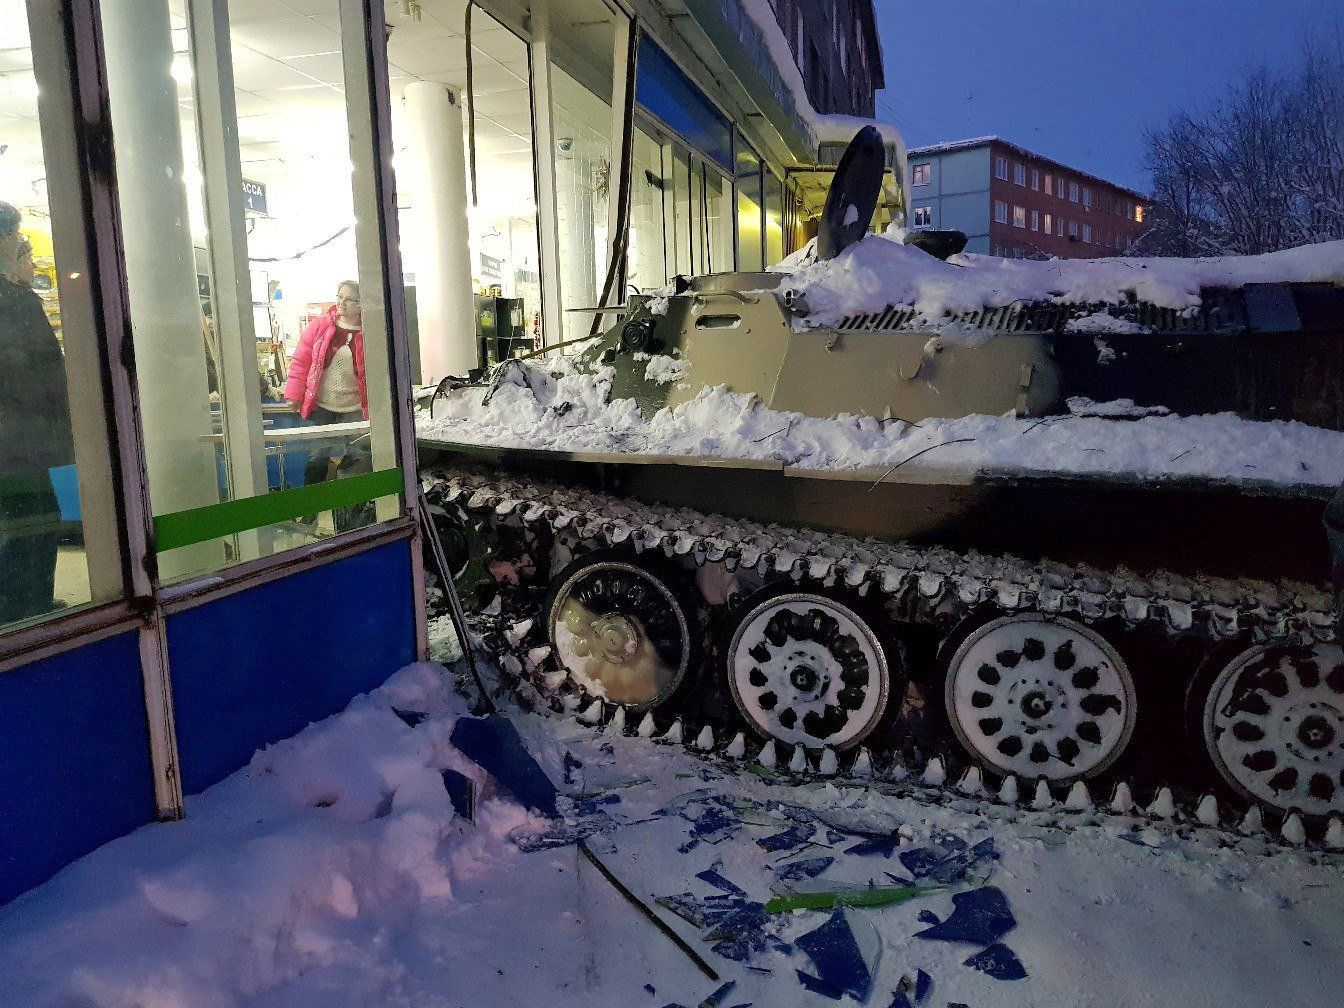 A view shows the scene of an incident involving an armoured personnel carrier (APC) which was rammed by a man into a shop window, before he climbed through the rubble to steal a bottle of wine, in the town of Apatity, Russia January 10, 2018. REUTERS/Albert Borkin NO RESALES. NO ARCHIVES. TPX IMAGES OF THE DAY - RC15D37429F0